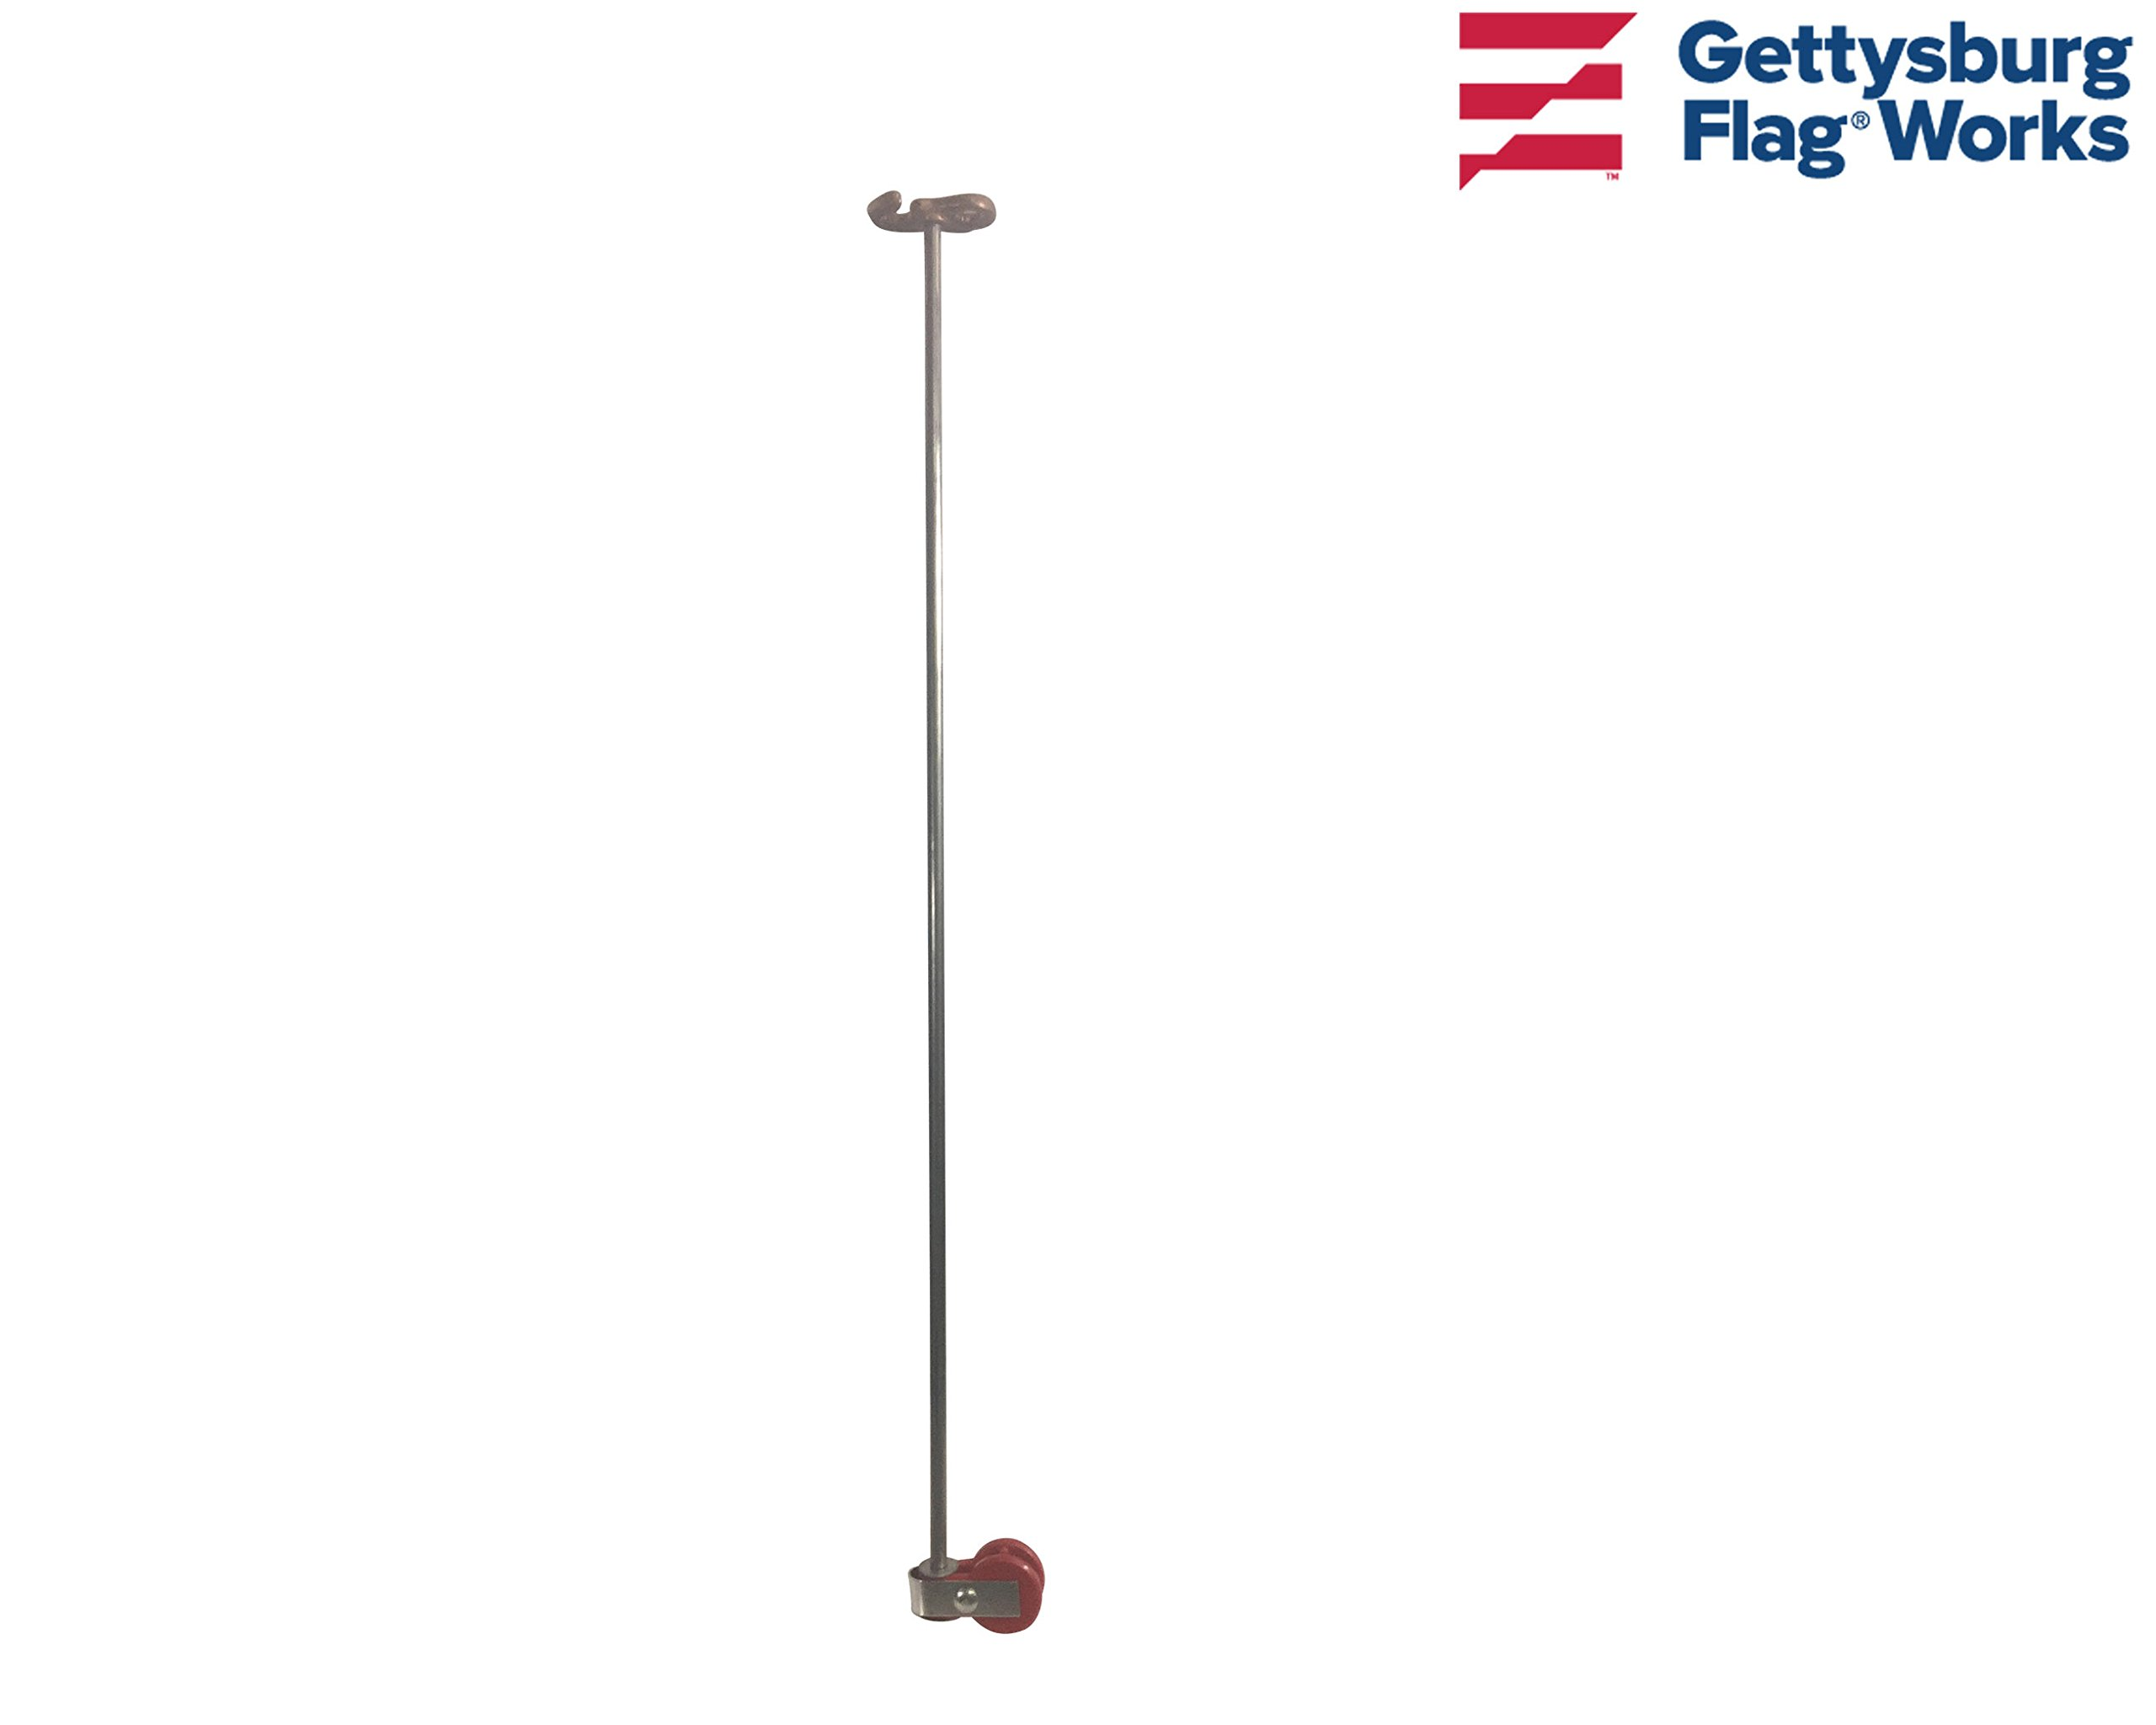 2.5' Light Duty Non-Tangle Rods for Wall Mounted and Outrigger Flagpoles, Fits 3x5' or 4x6' Flags